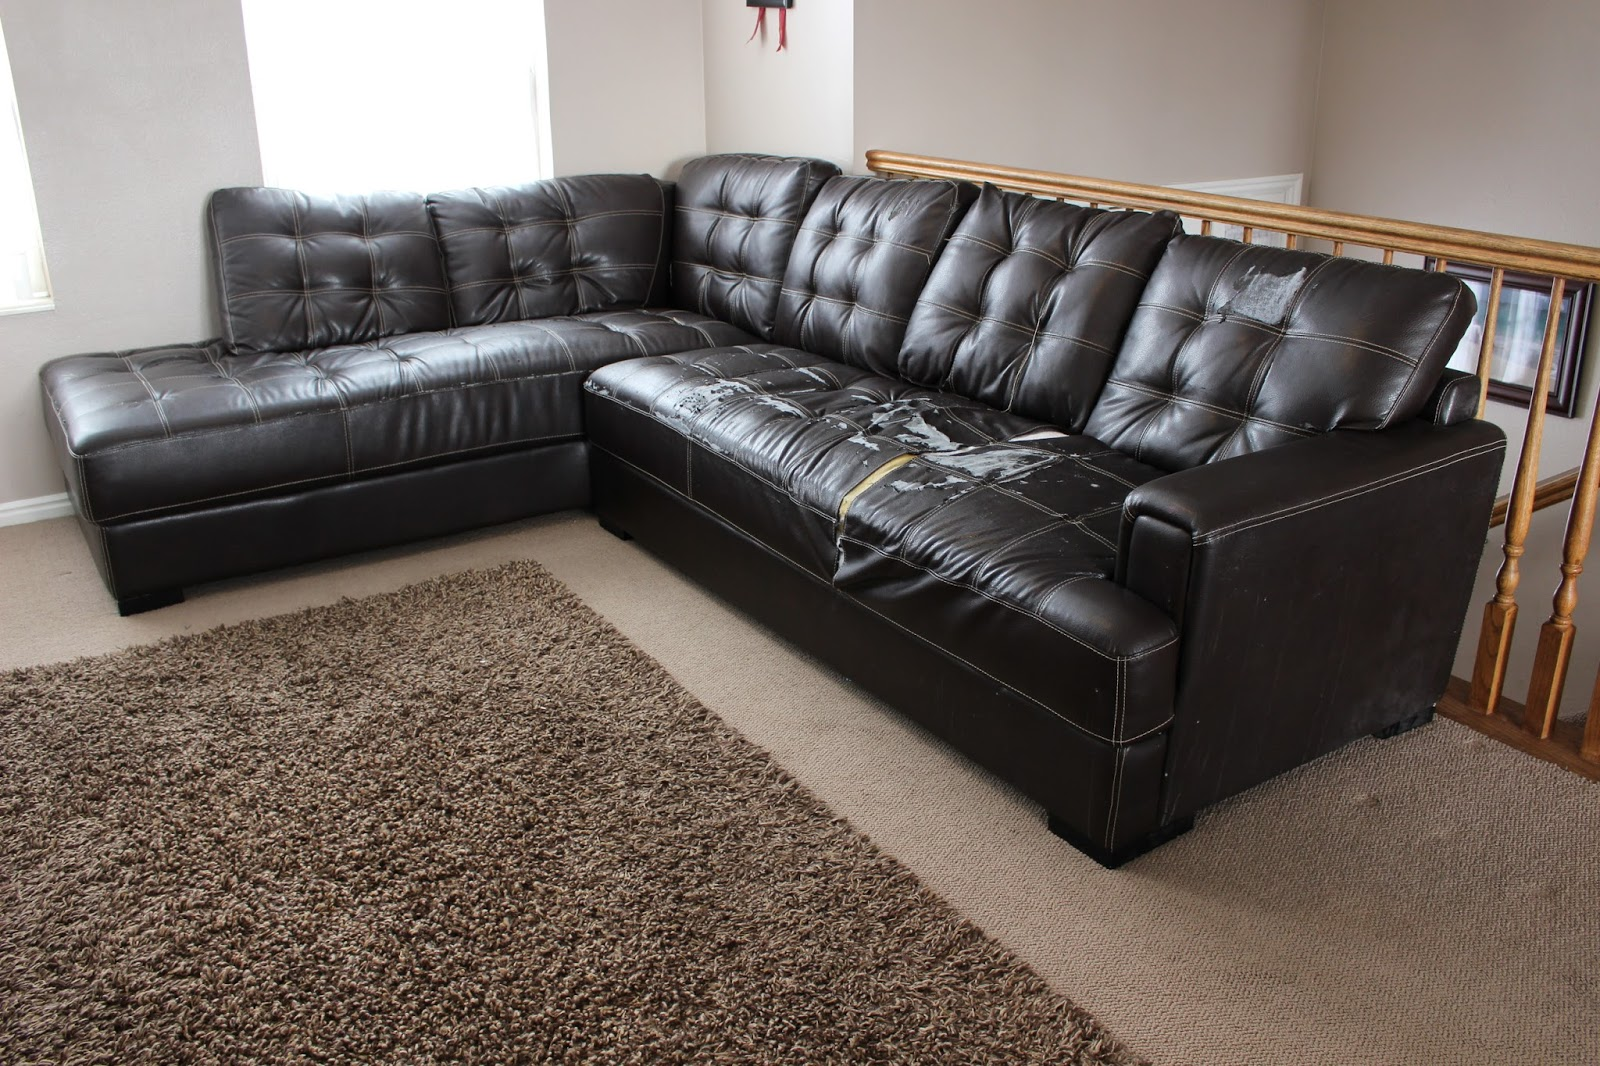 Utah county mom beginner 39 s guide to reupholstering a sectional sofa Reupholster loveseat